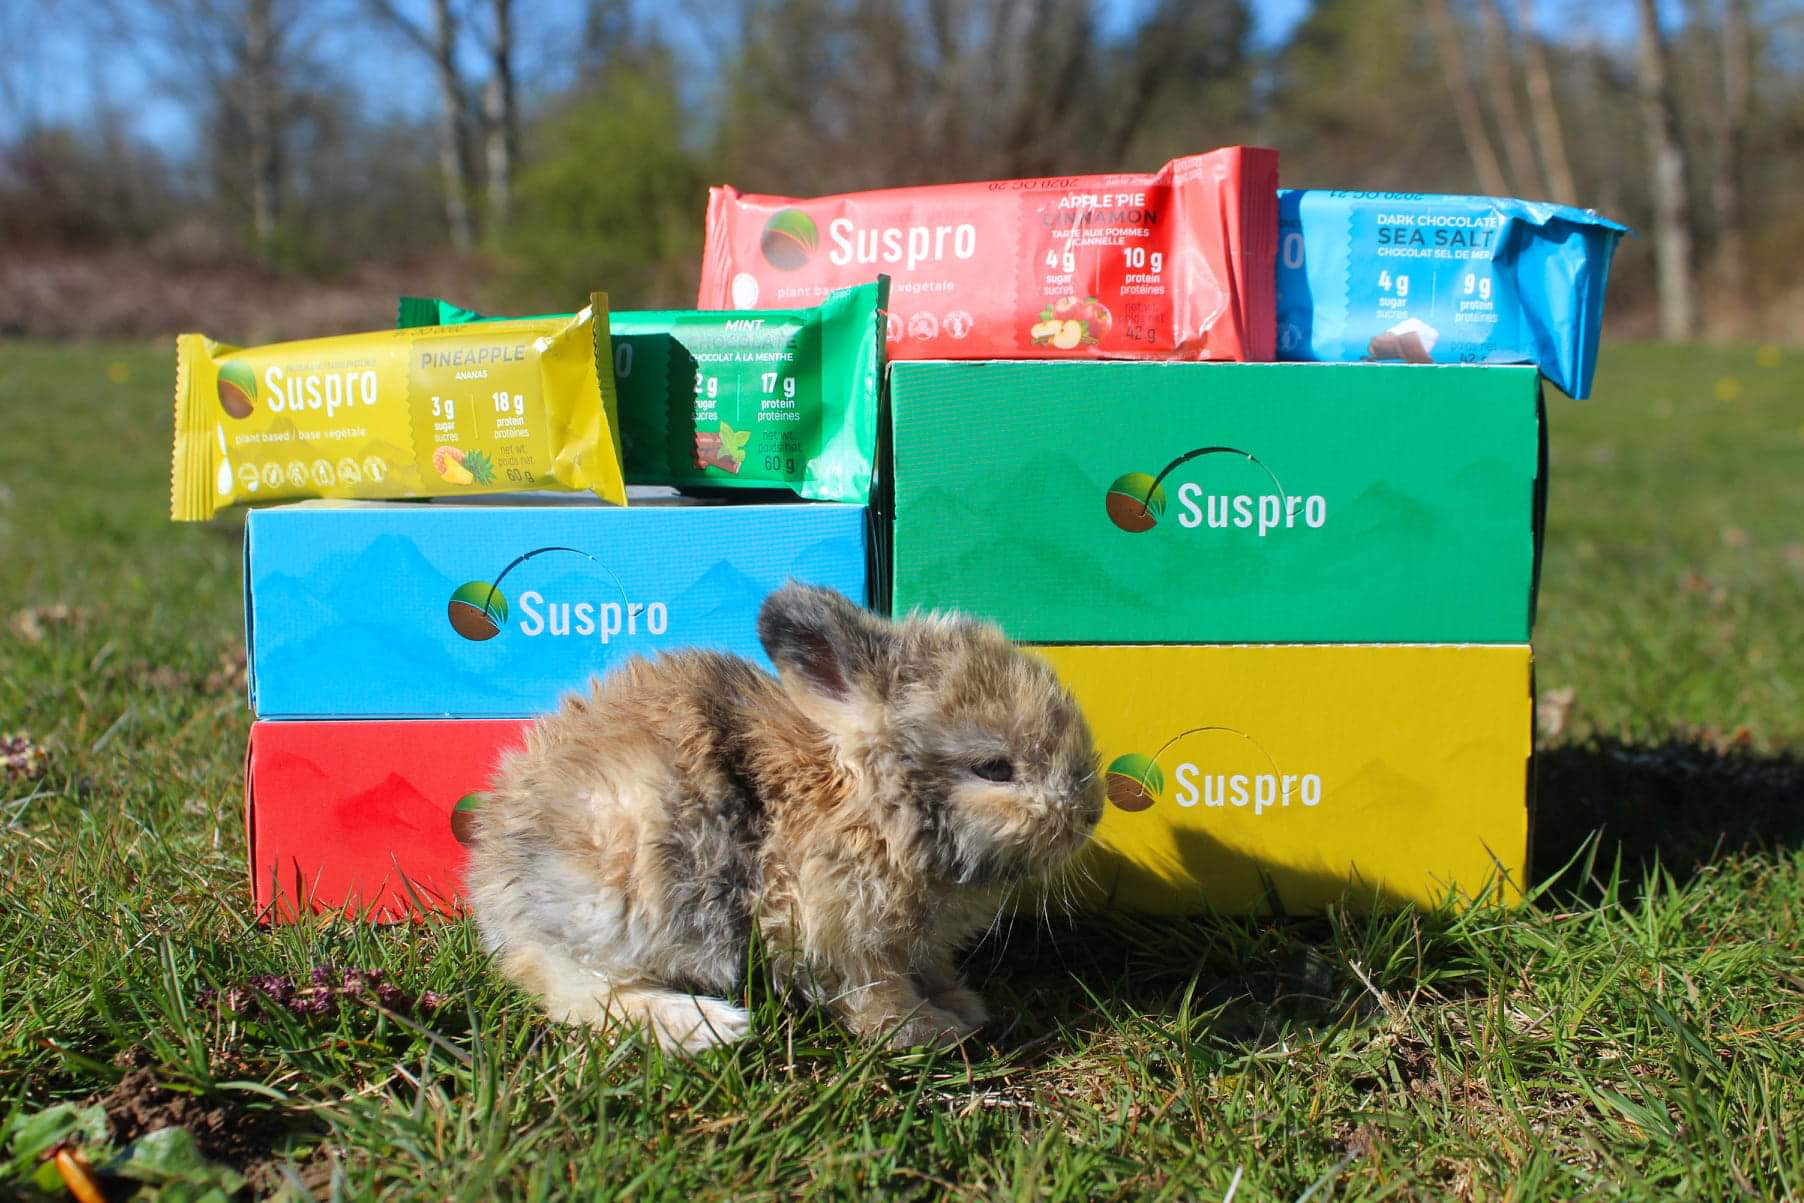 Suspro protein bars with Critter Care Wildlife